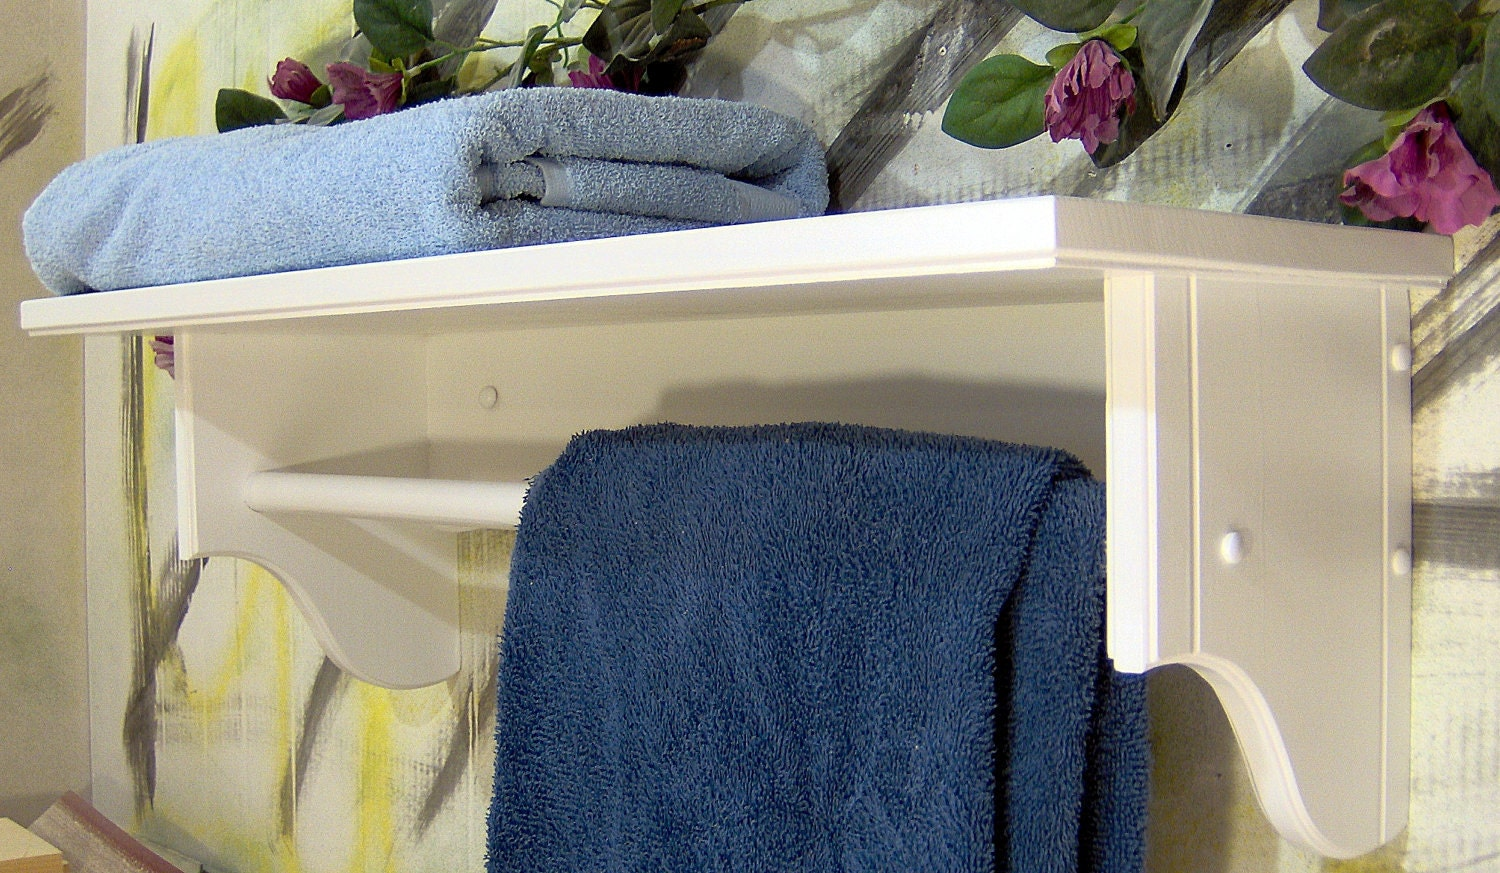 white 26 towel bar with inch shelf for towels or. Black Bedroom Furniture Sets. Home Design Ideas